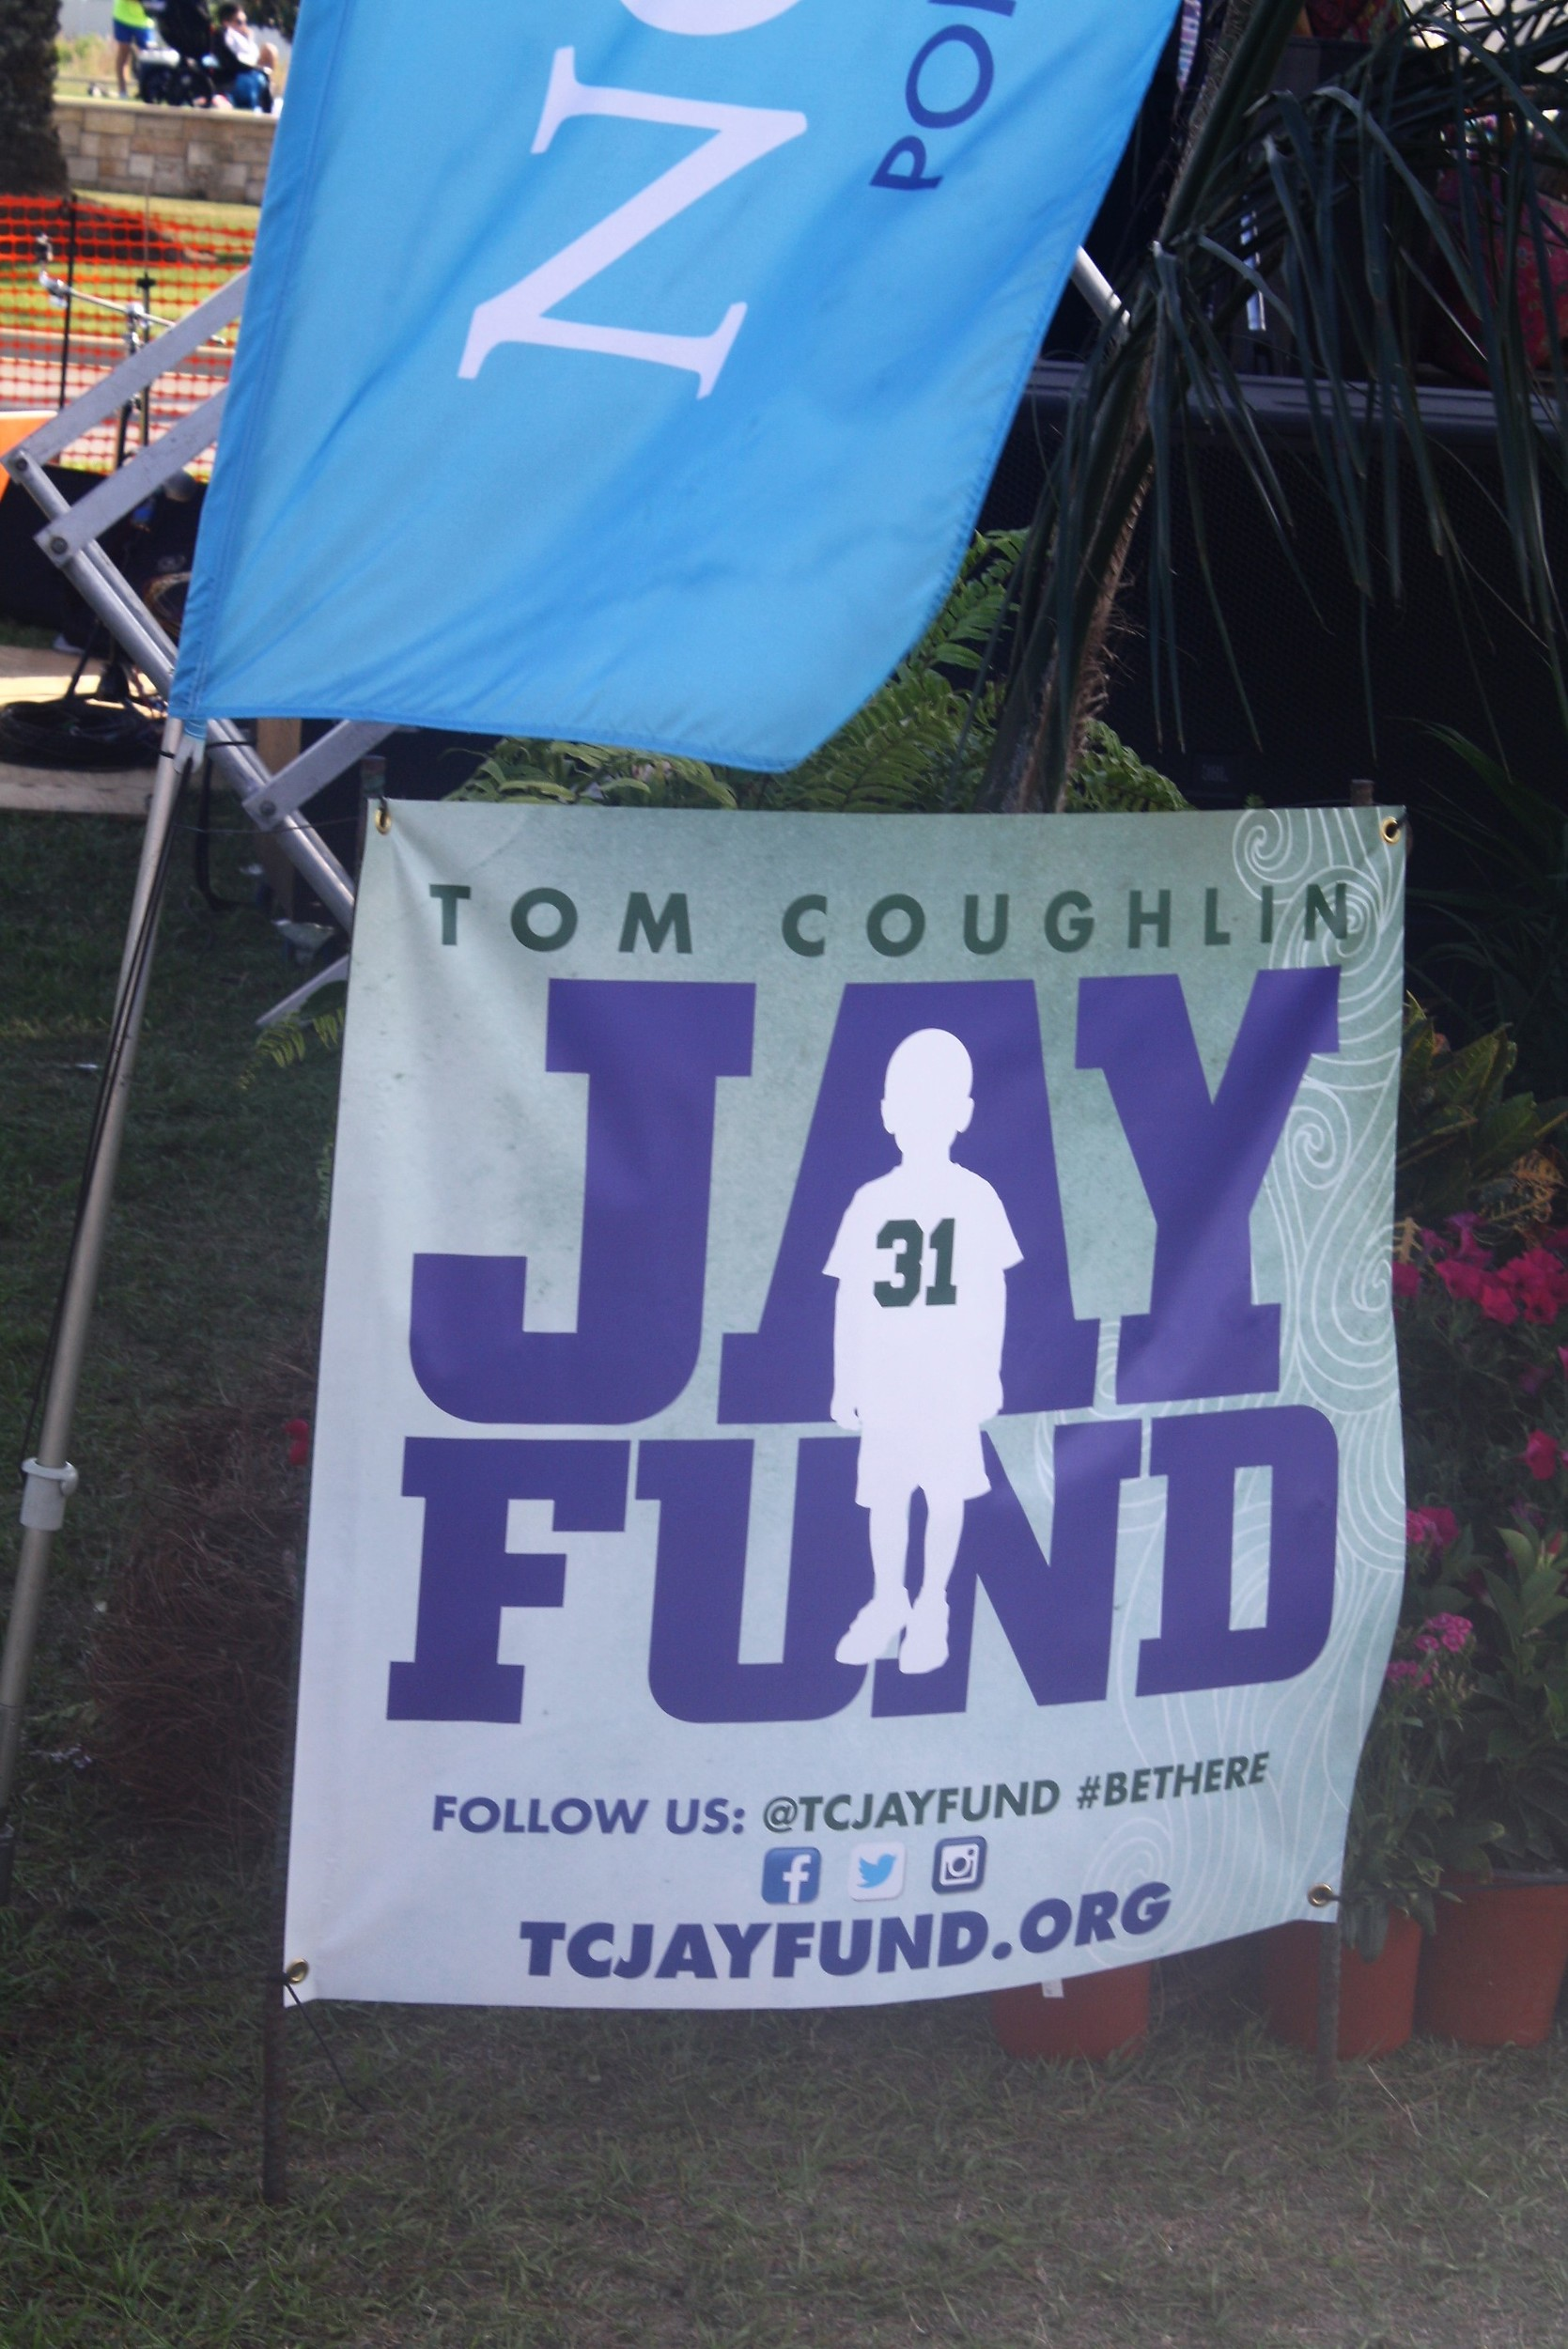 A portion of the proceeds from Roscolusa benefits The Tom Coughlin Jay Fund